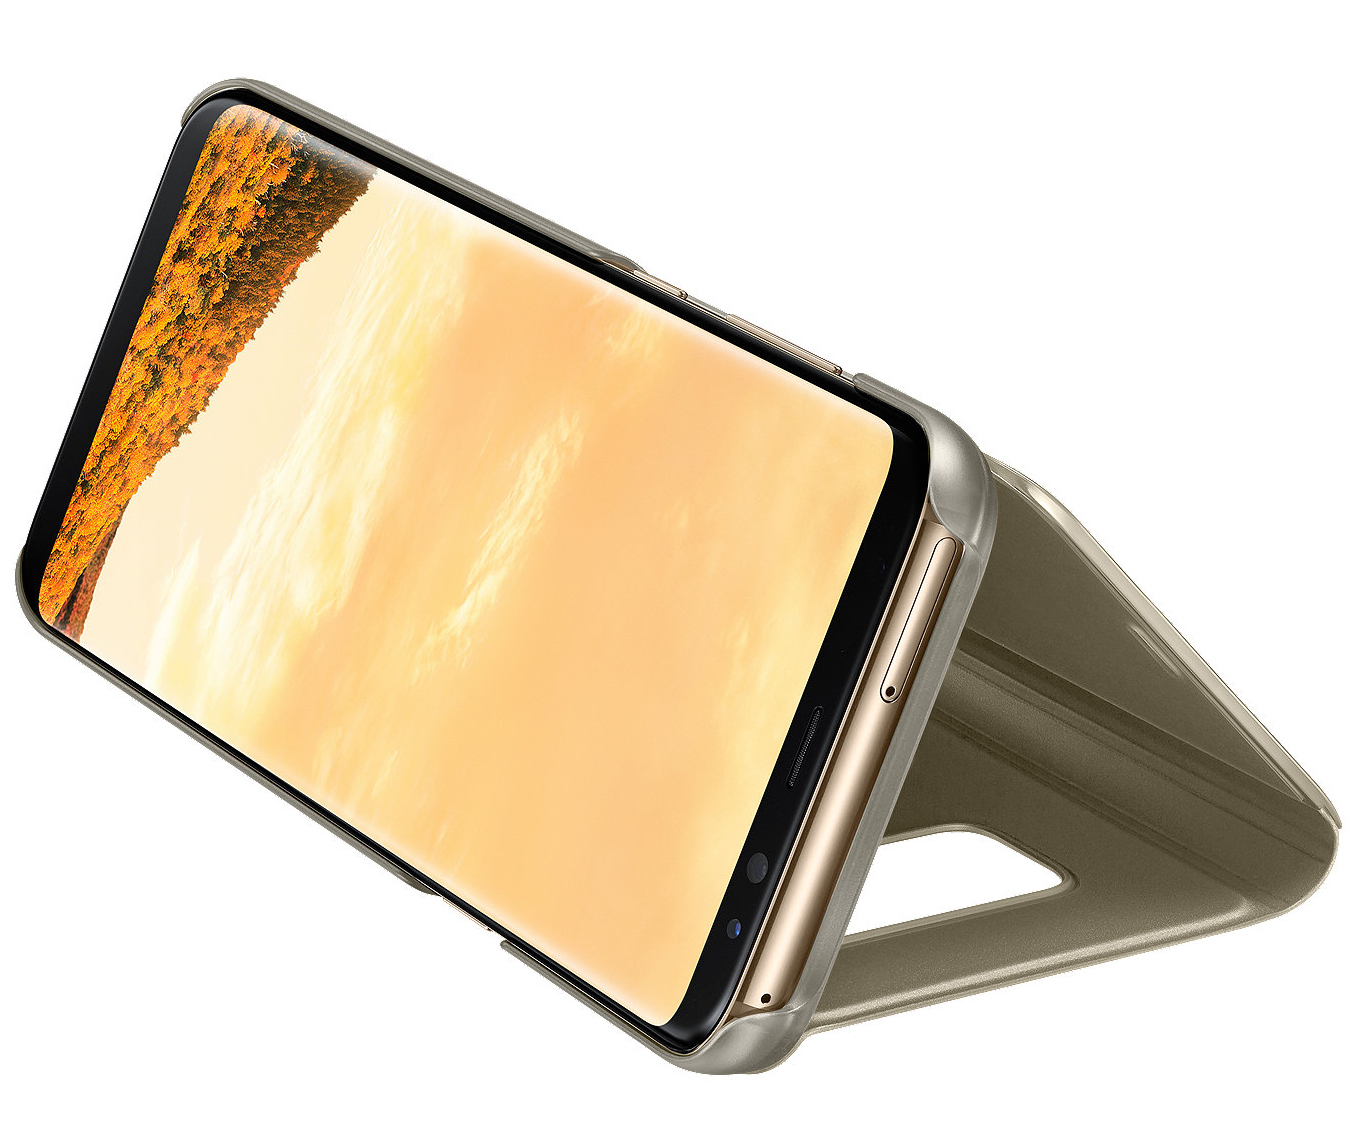 Etui z klapka funkcyjną Samsung Clear View Standing Cover do Galaxy S8 Plus, złote (Gold).